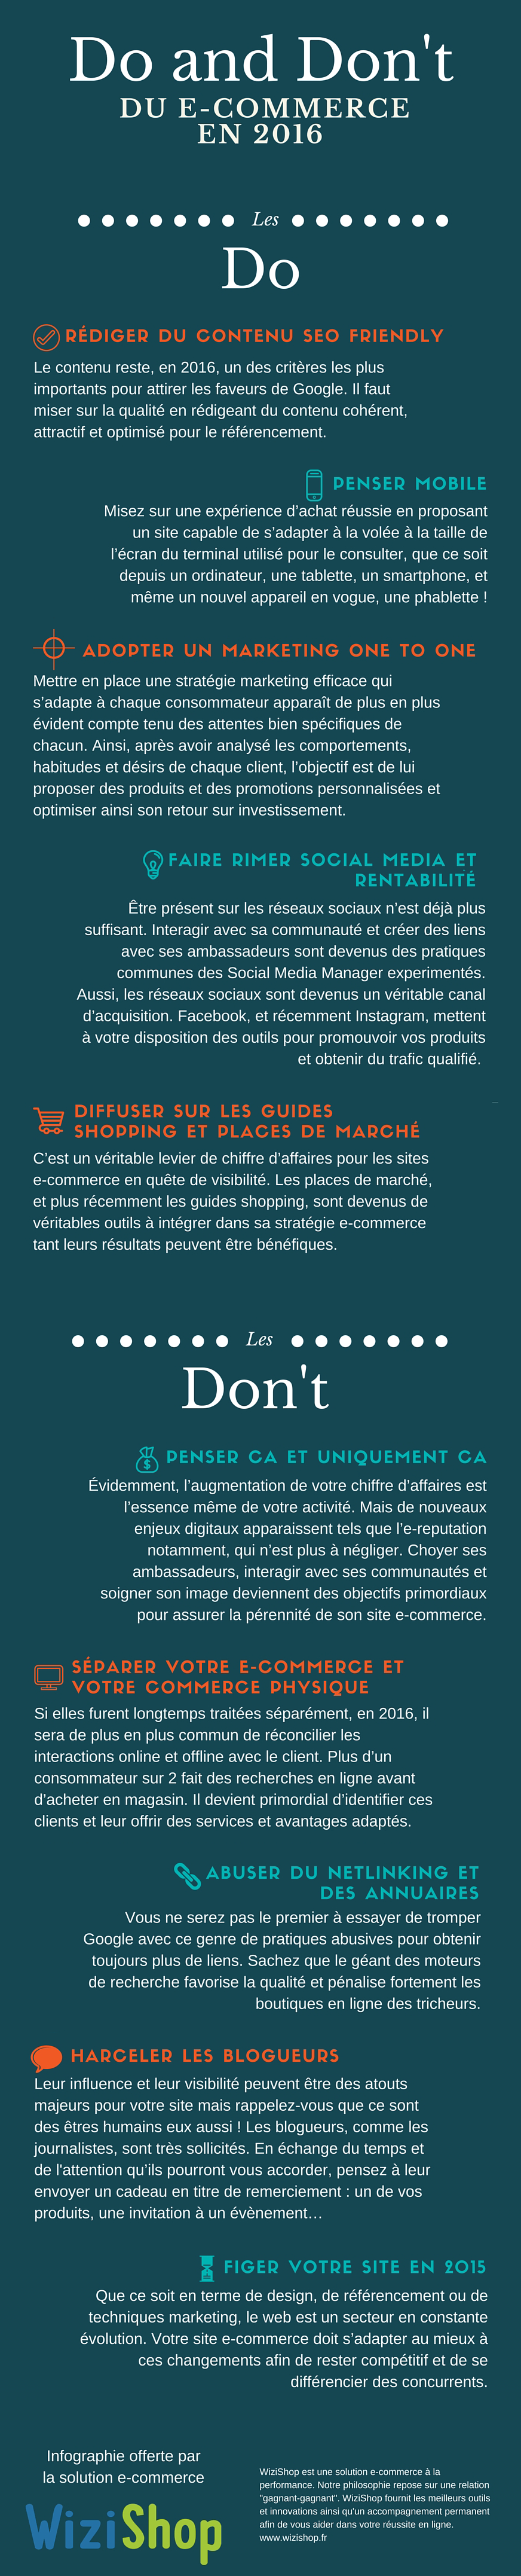 infographie-ecommerce-2016